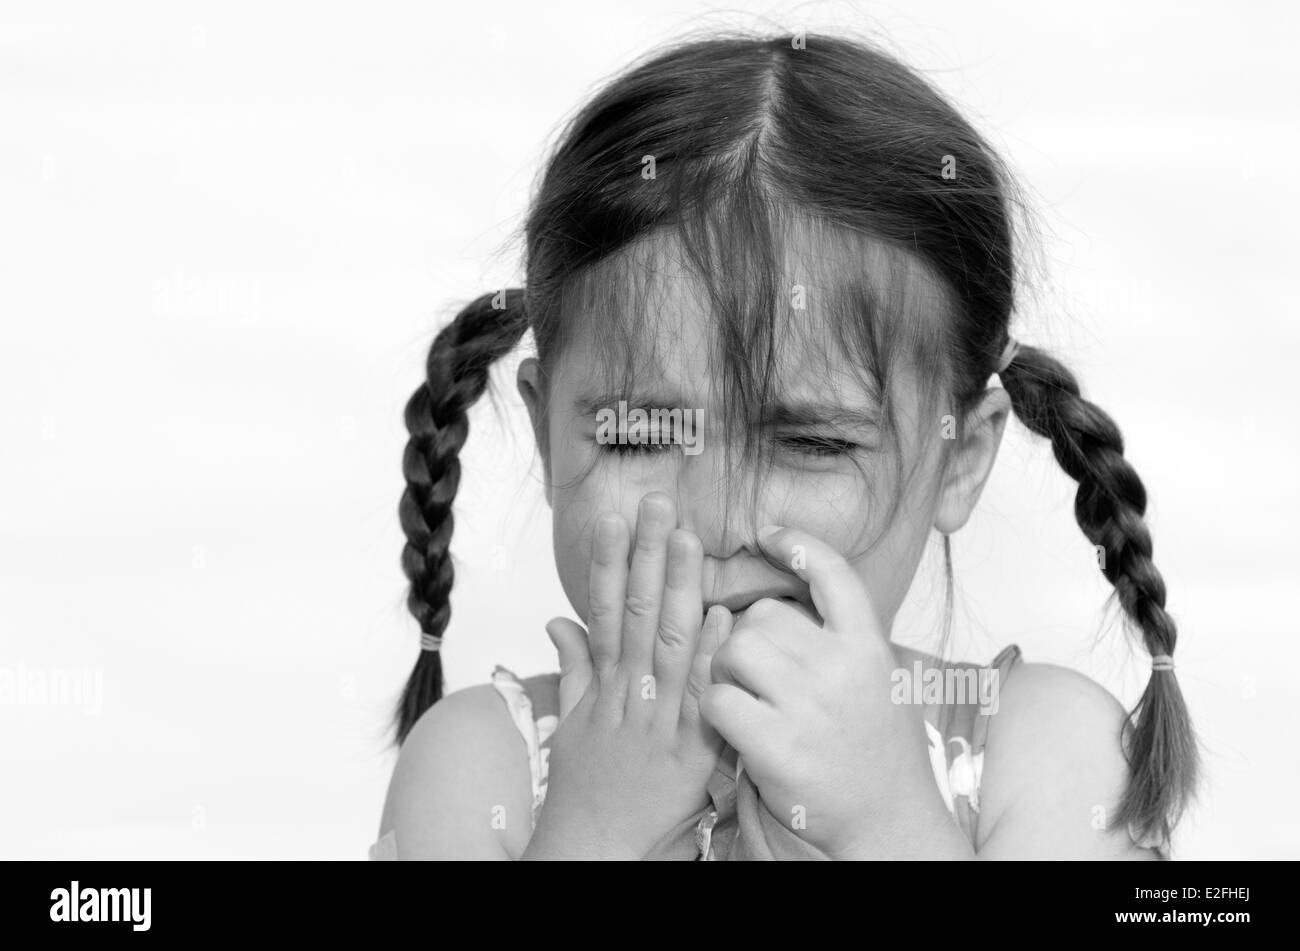 Little girl (age 4) cries isolated on white background. Concept photo of child care, childhood, issues, emotion, - Stock Image